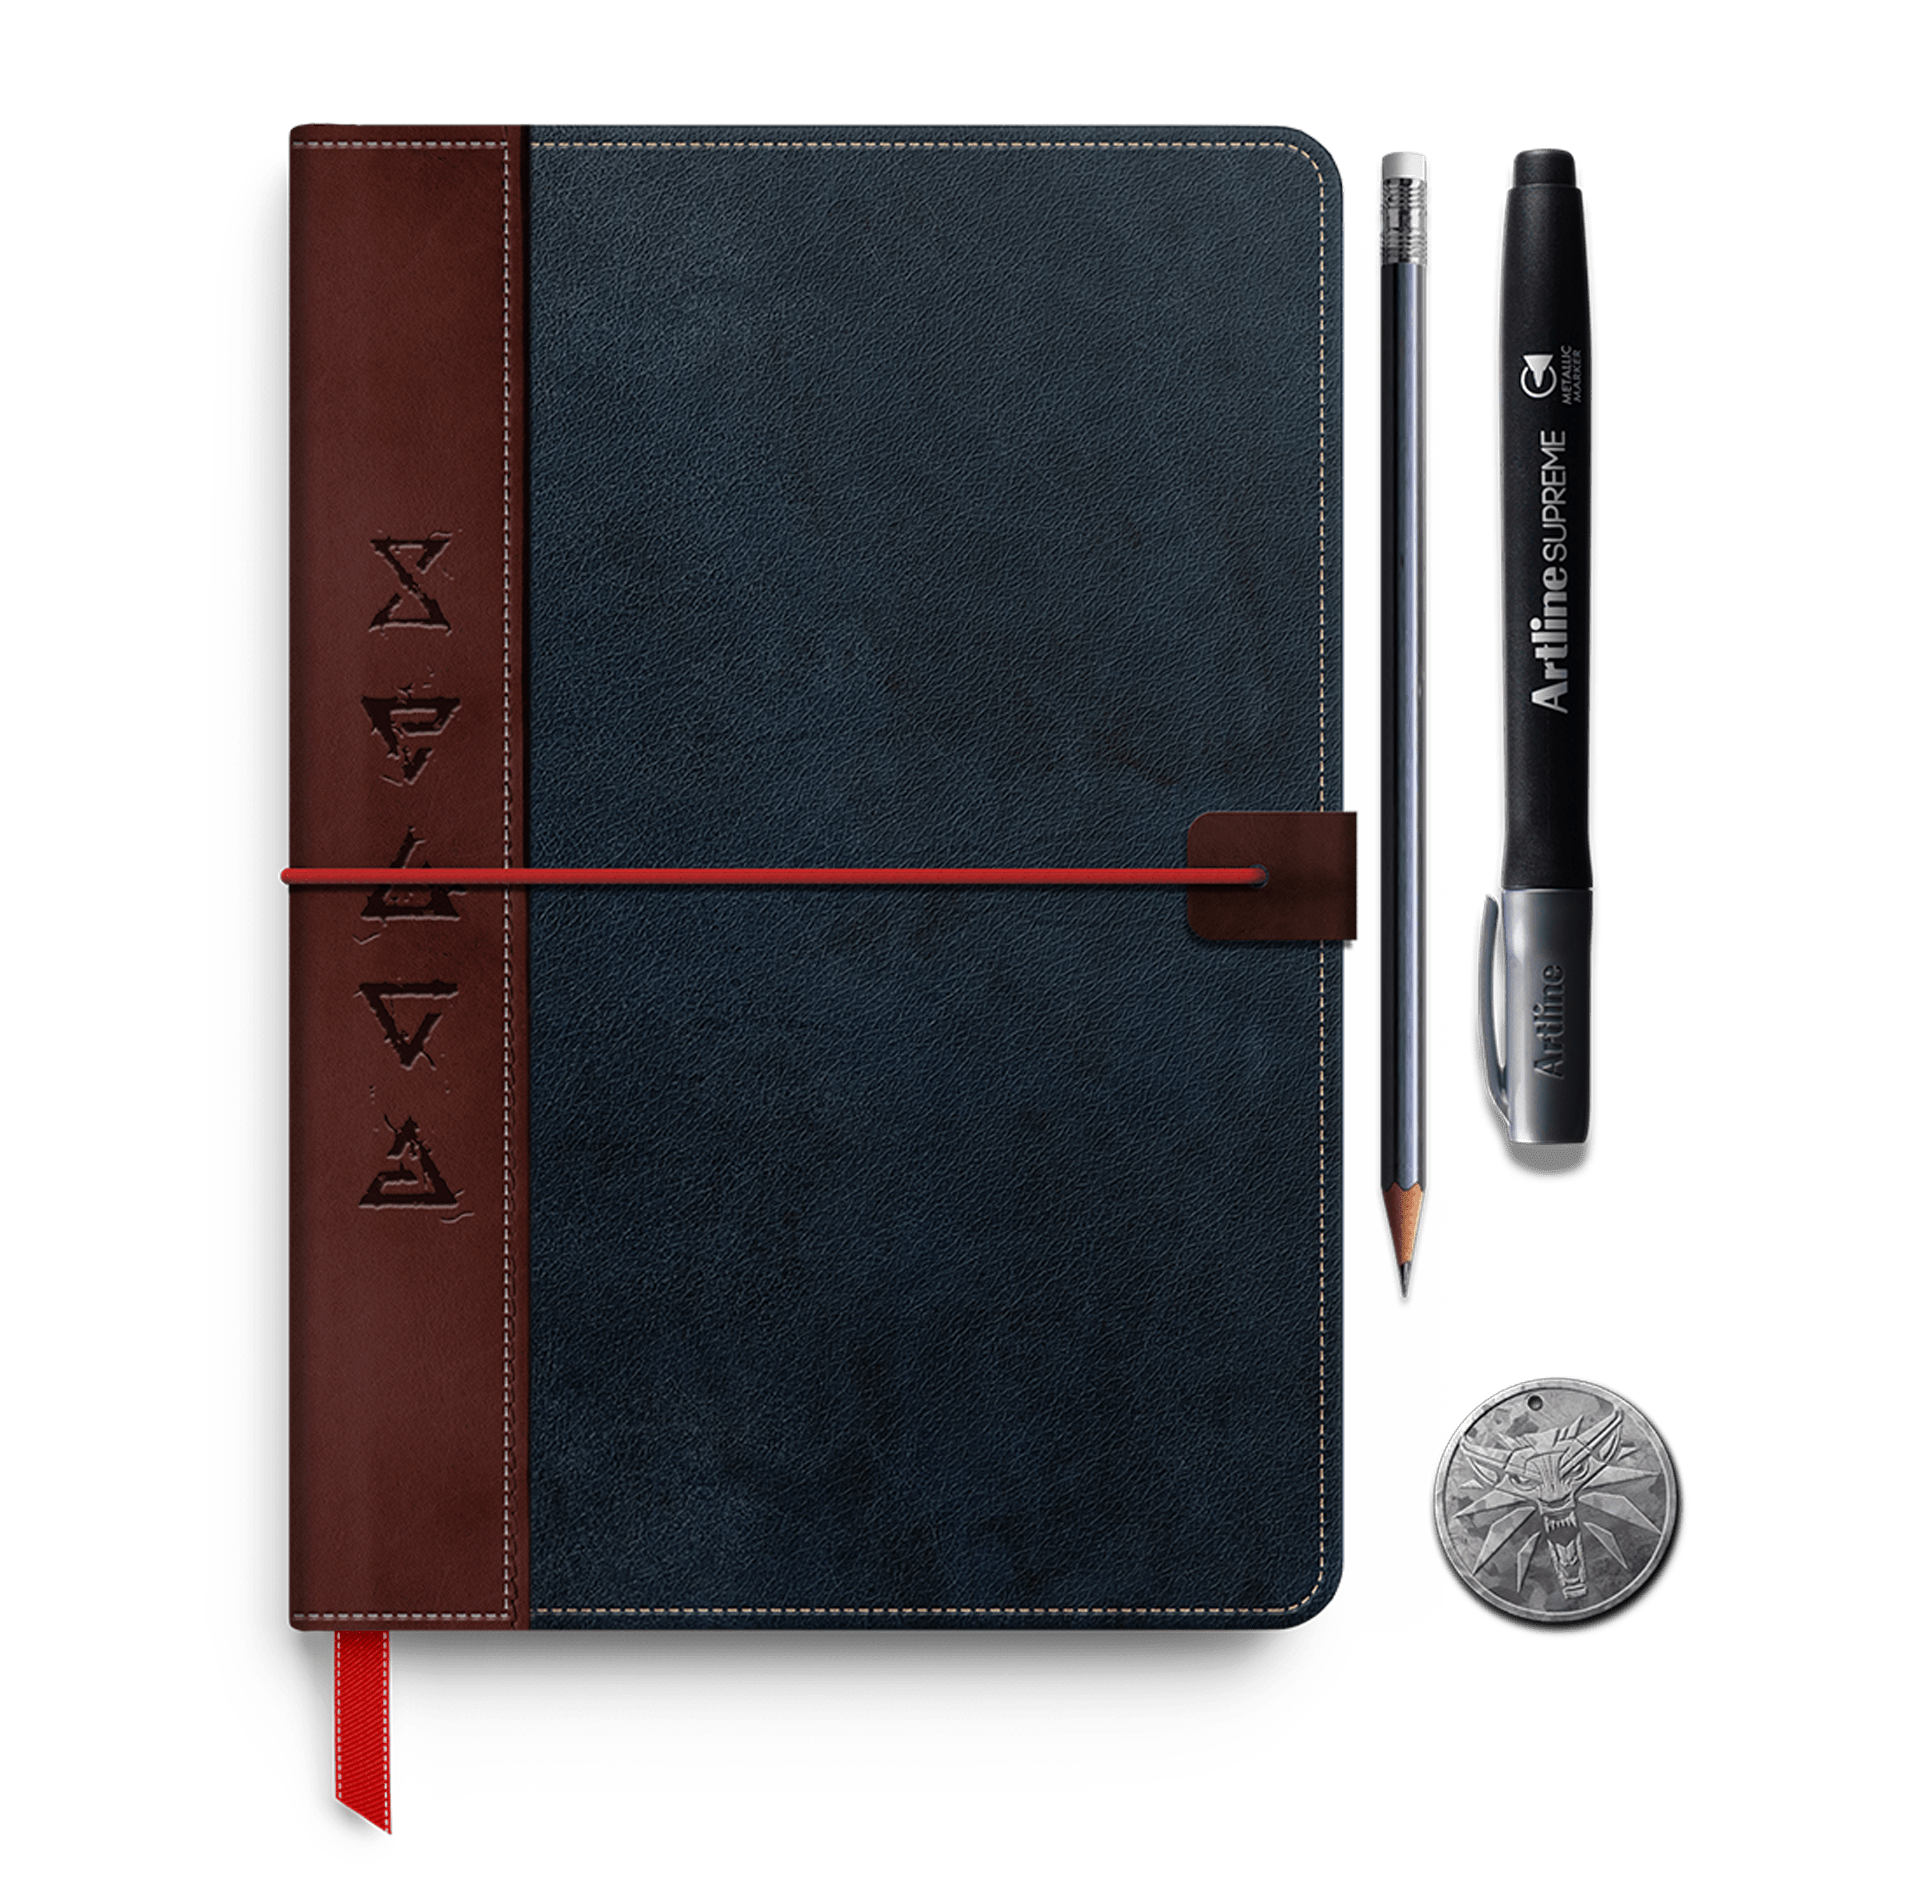 Artwork The Witcher Notebook | The Witcher 3 | CD Projekt Red